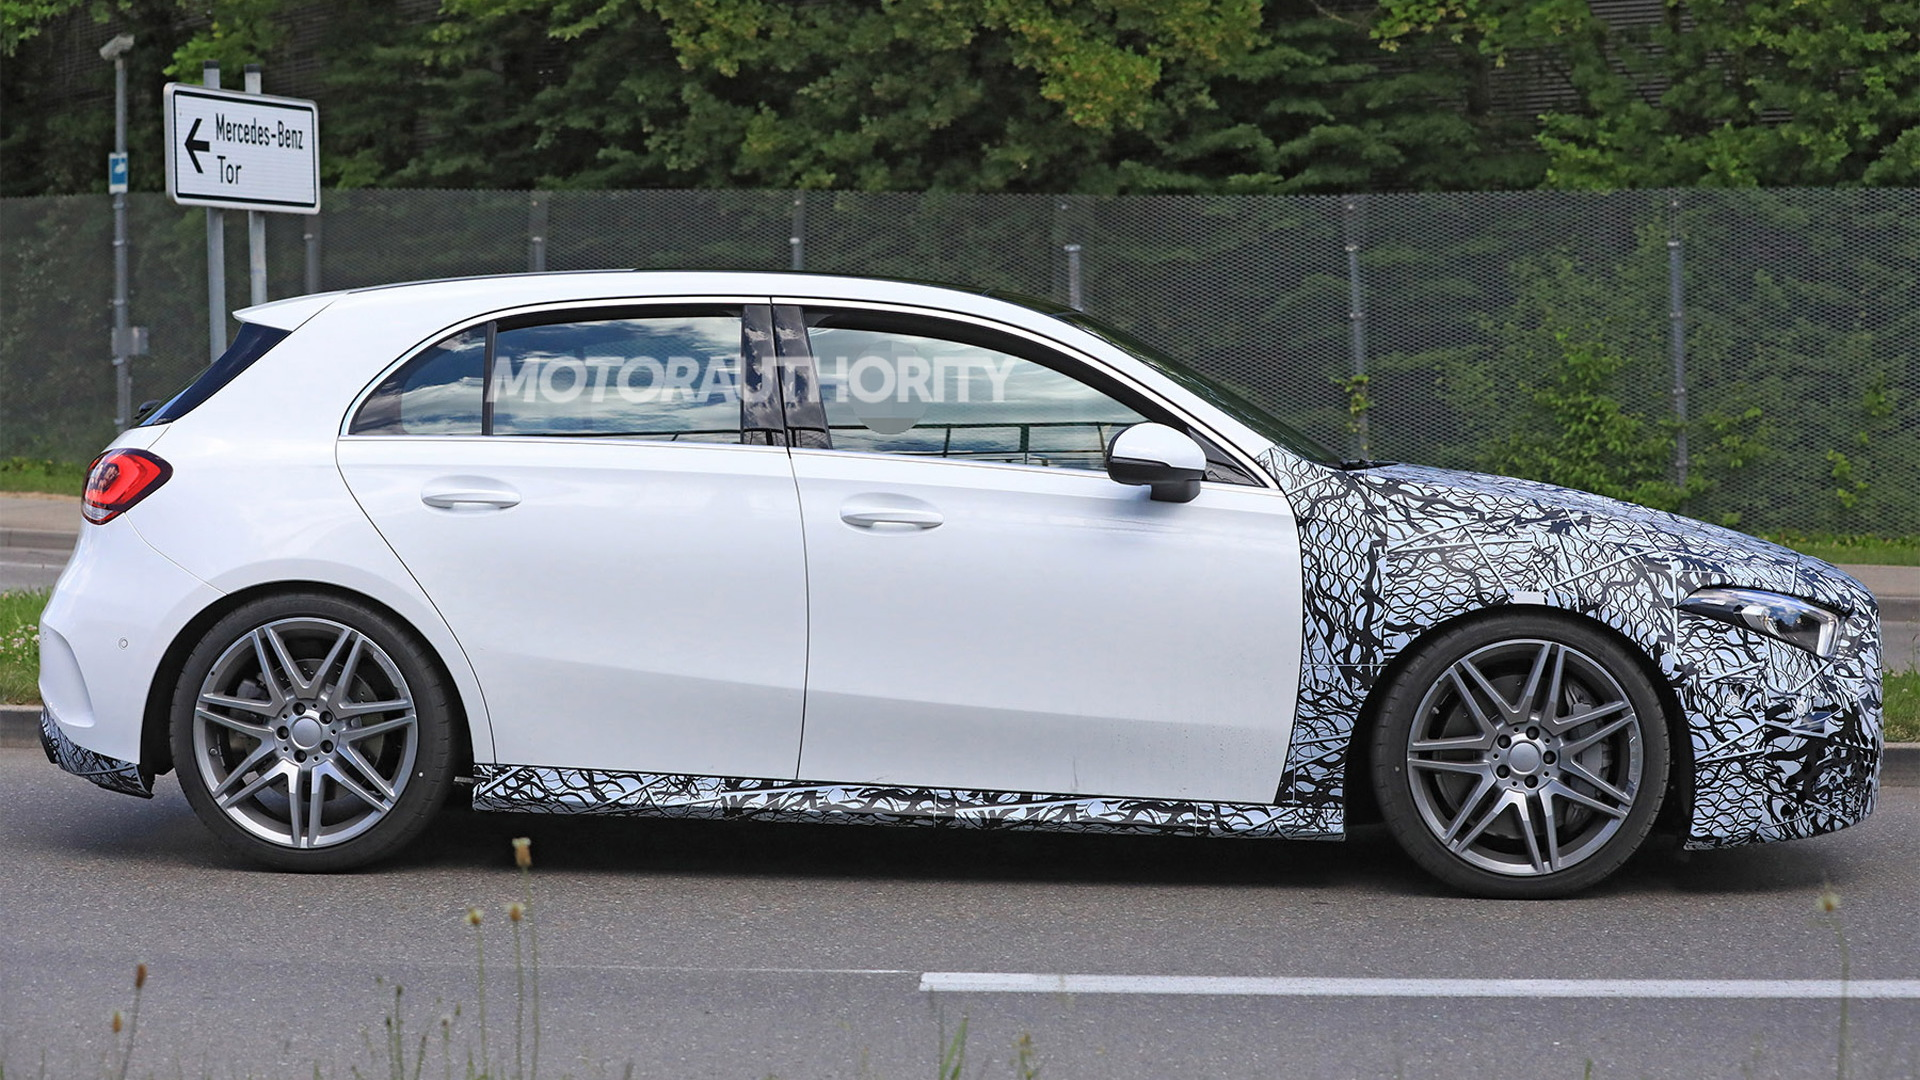 2020 mercedes amg a45 hatchback spy shots and video. Black Bedroom Furniture Sets. Home Design Ideas